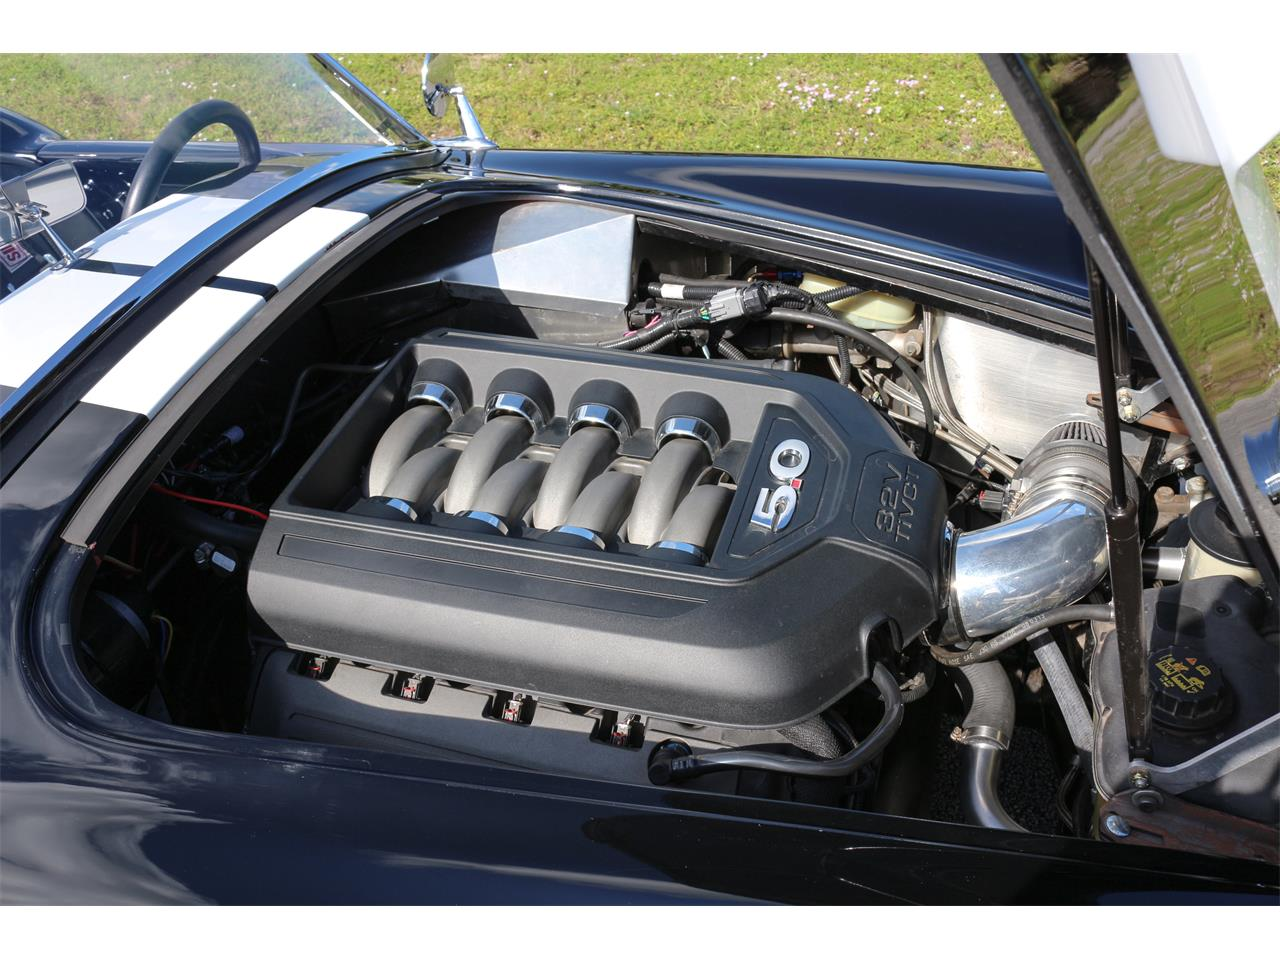 Large Picture of Classic 1965 Cobra located in Florida Offered by a Private Seller - MDPC